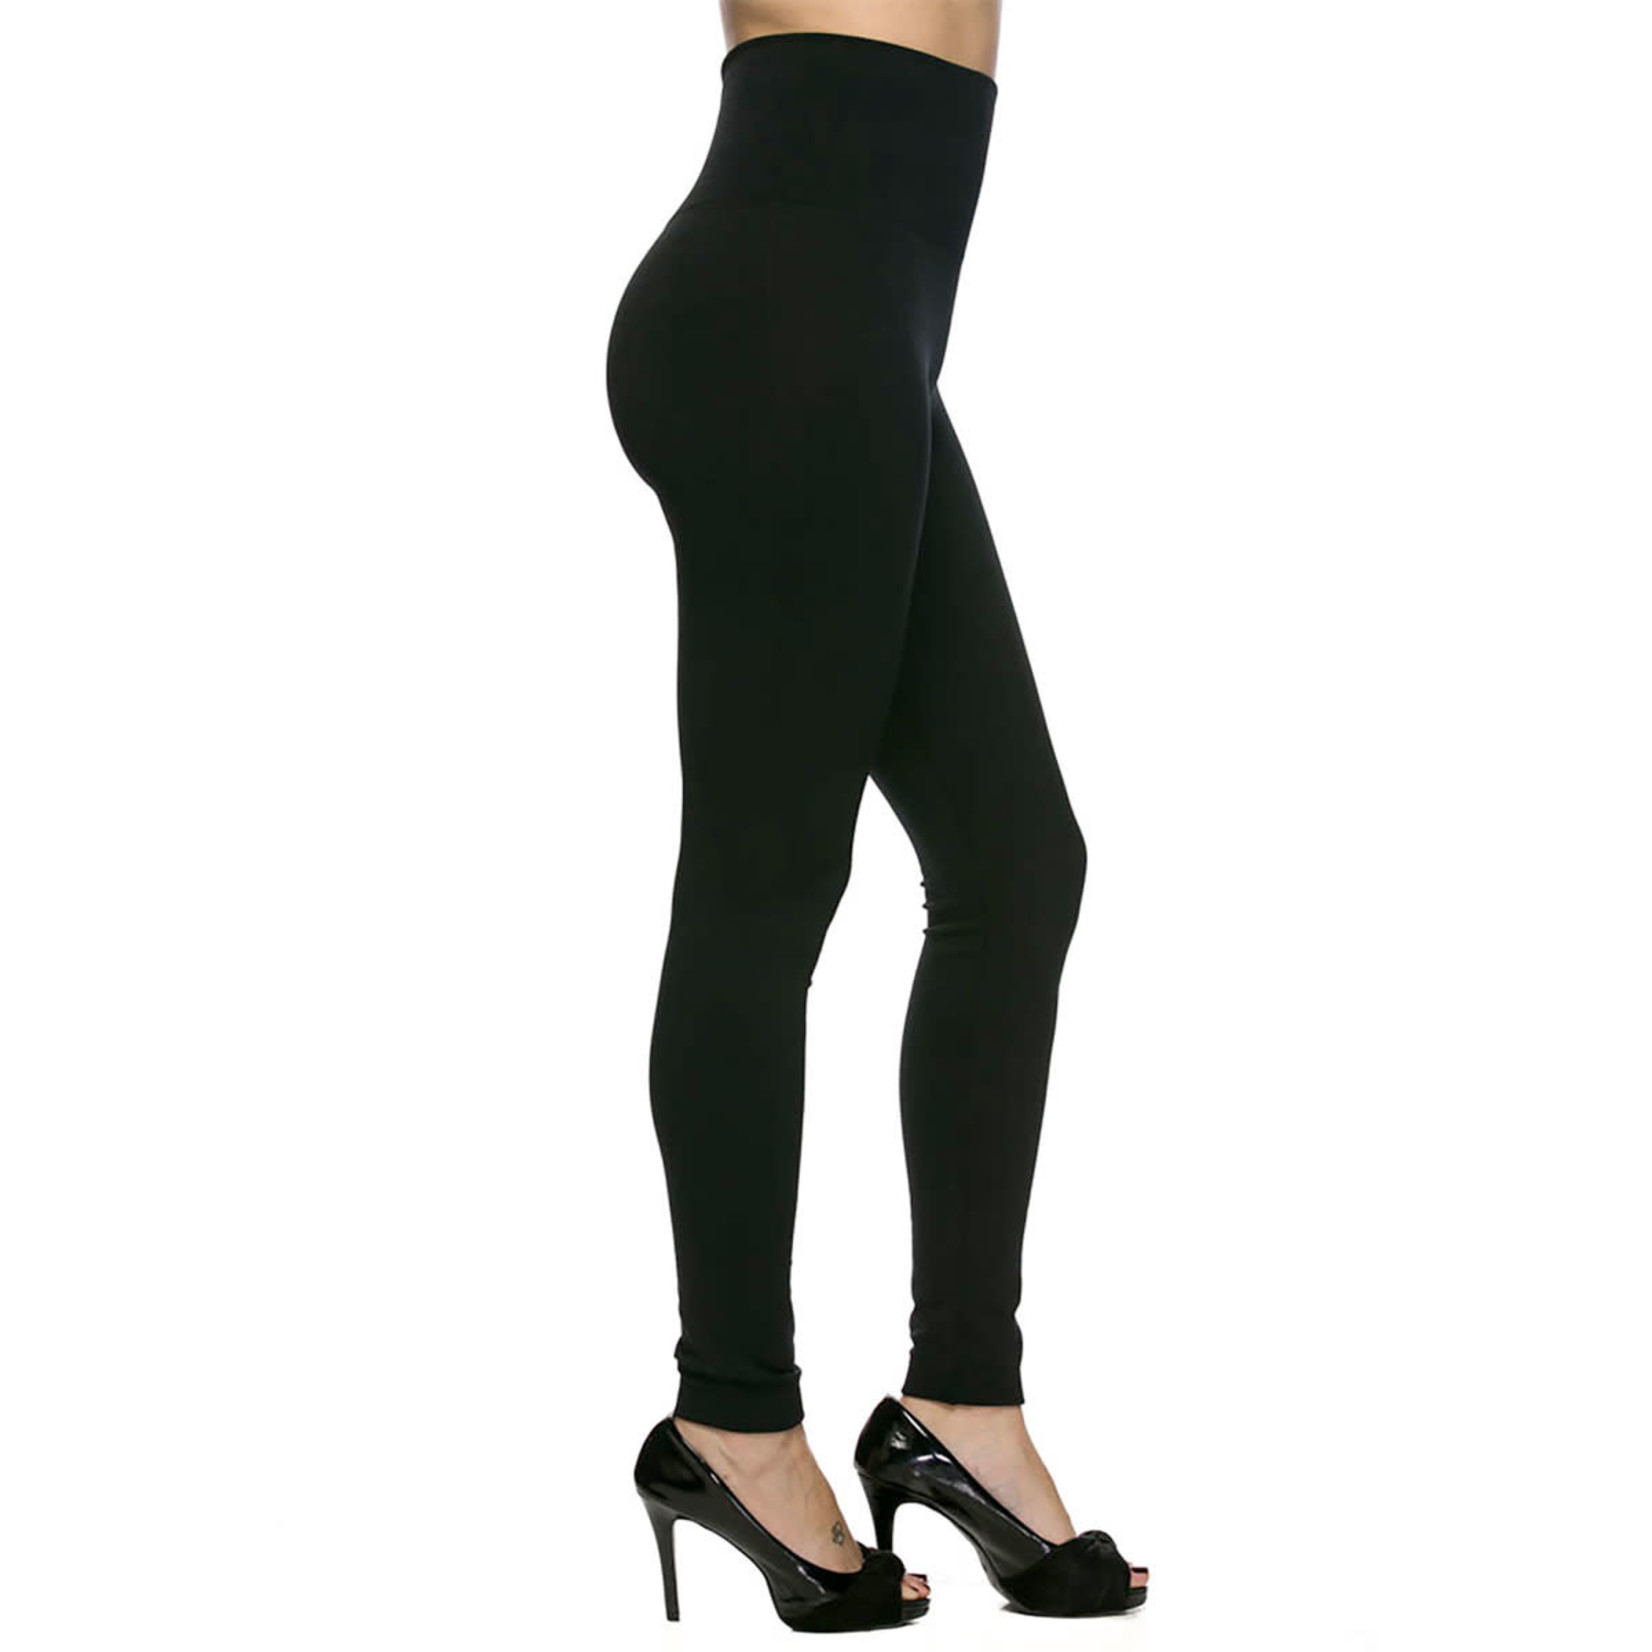 Black Fleece Lined Leggings With High Waist in One Size